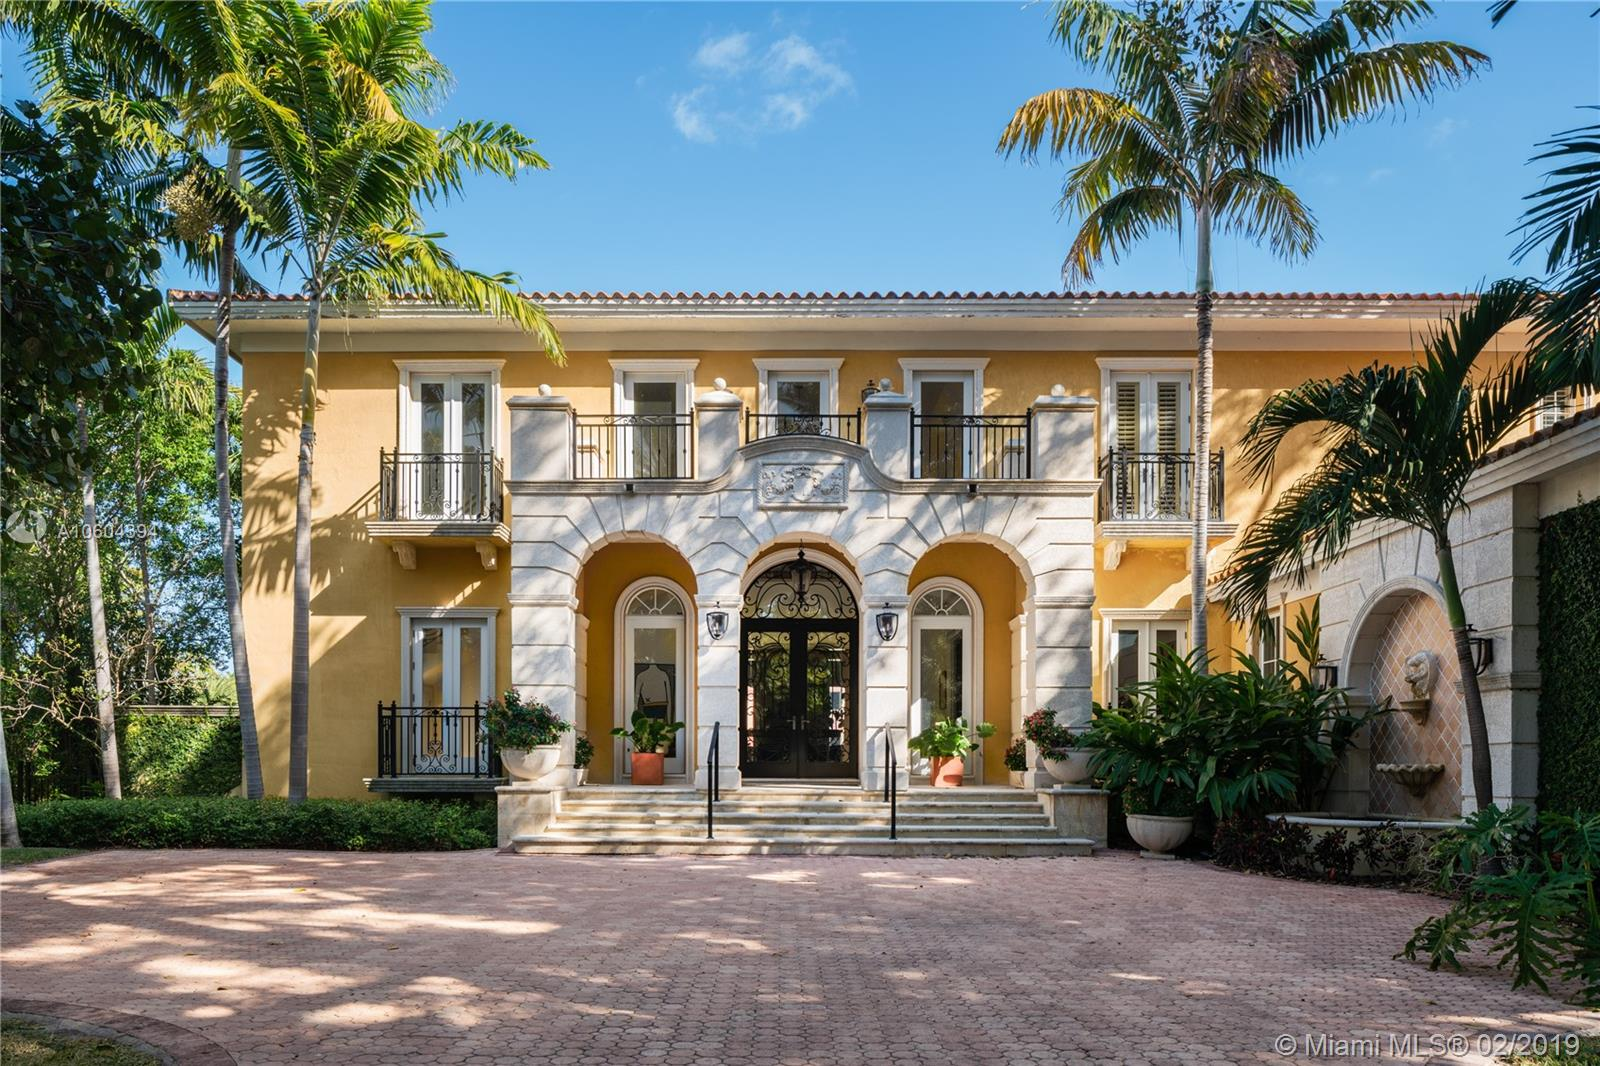 Stunning Bay, Harbor And Miami Skyline Views From This Addison Mizner-Inspired Waterfront Estate. Villa<Br />Bellavista, Built In 2002 And Meticulously Maintained, Located In A Quiet Cul-De-Sac On Key Biscayne+Ógé¼Gäós<Br />Coveted Mashta Island. Residence Boasts 5 Suites Upstairs, 2 Suites Down For Office/Library/Service/Guest<Br />Quarters,  7.5 Baths,  Huge Master  Suite With Sitting Area,  Formal Living Room With Fireplace, <Br />Family/Entertainment Room, Formal Dining, Modern Kitchen, Breakfast Area, All Leading To Broad Open<Br />Terraces With Spectacular Water Views. Amenities Include Dual Entrances, Privacy Wall, Electrical<Br />Gates For Bothl Driveways, 3-Car Garage, Courtyards, Pool, Spa, New Sea Wall, 120Ft Of Waterfront<Br />And Dock For Large Yacht With Immediate Access To Smugglers Cove And Biscayne Bay.